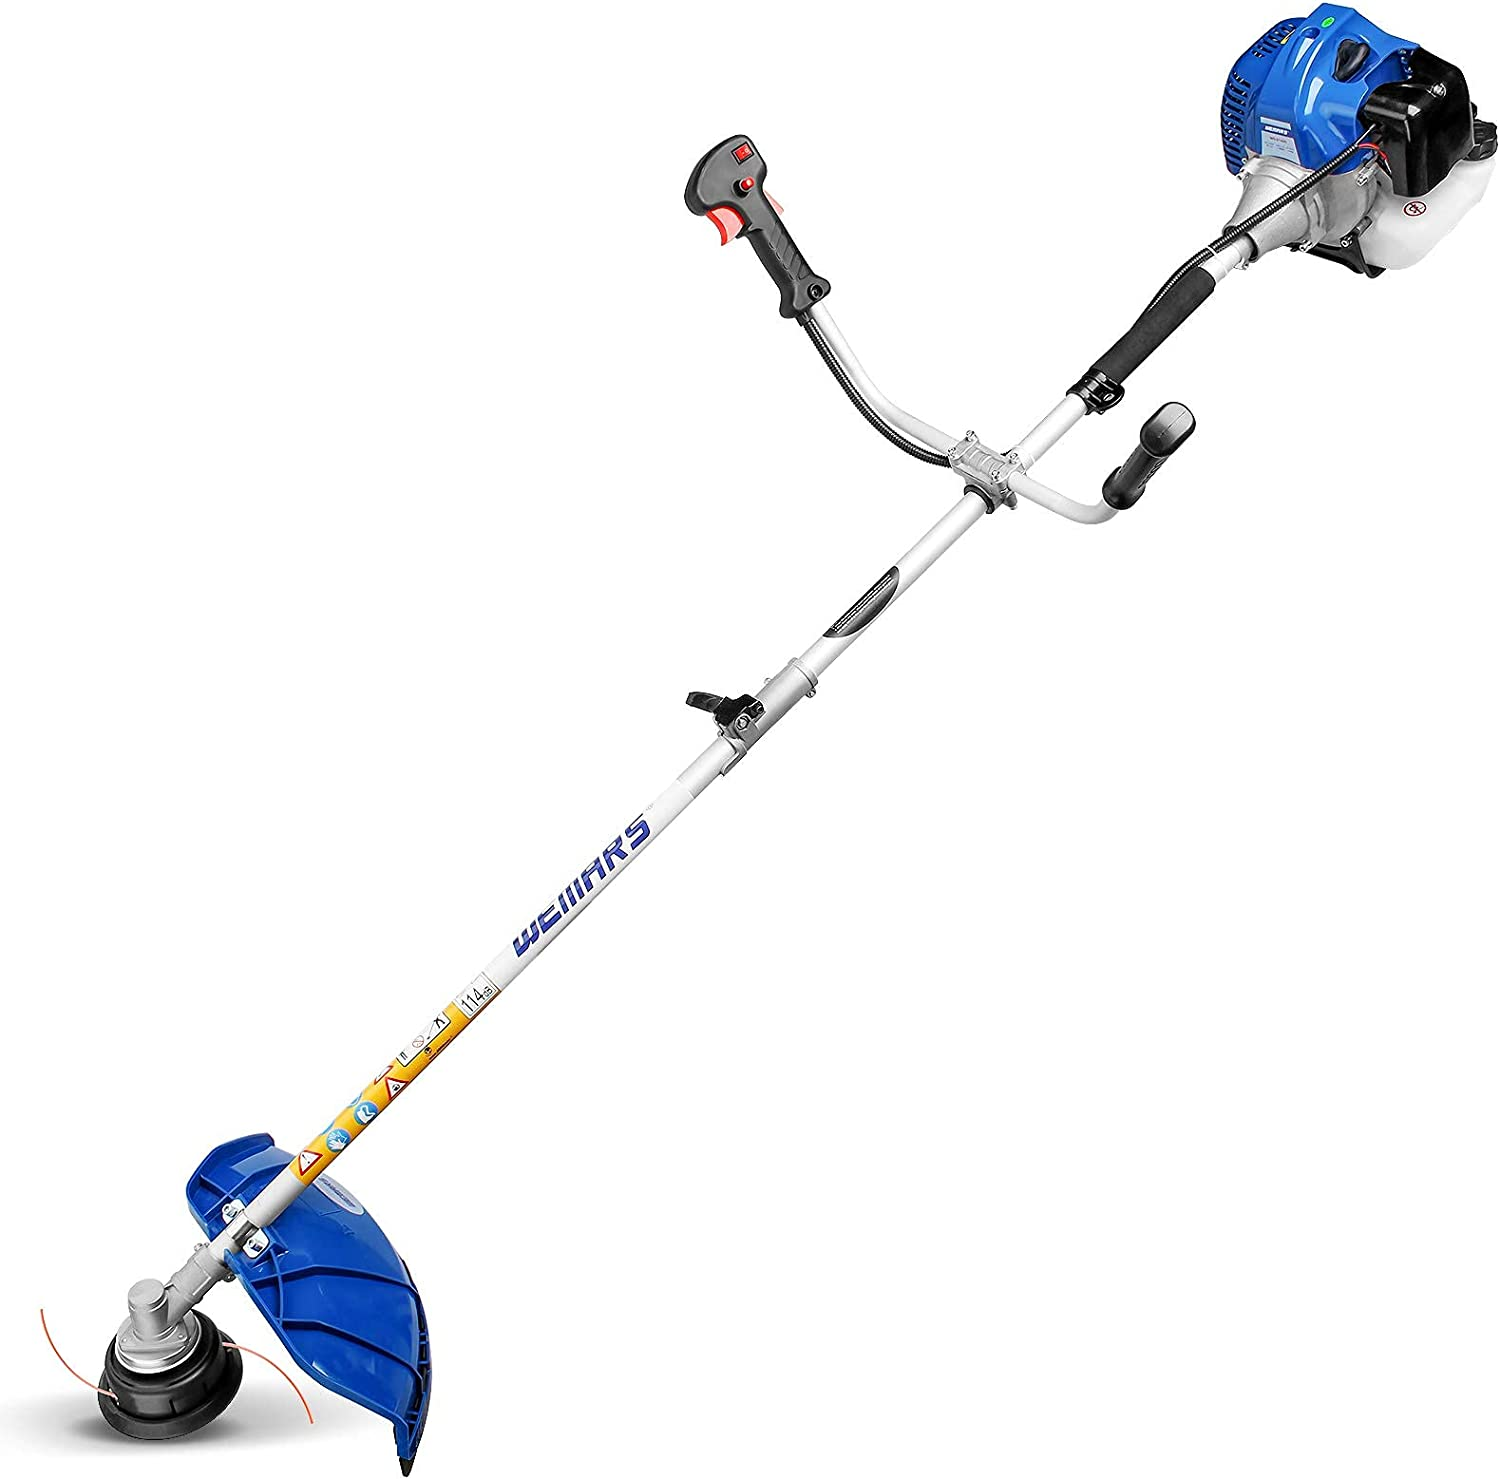 WEMARS 42.7CC Gas String Trimmer Cutter Free shipping on posting reviews Brush 5 popular 2-Cycle Straig